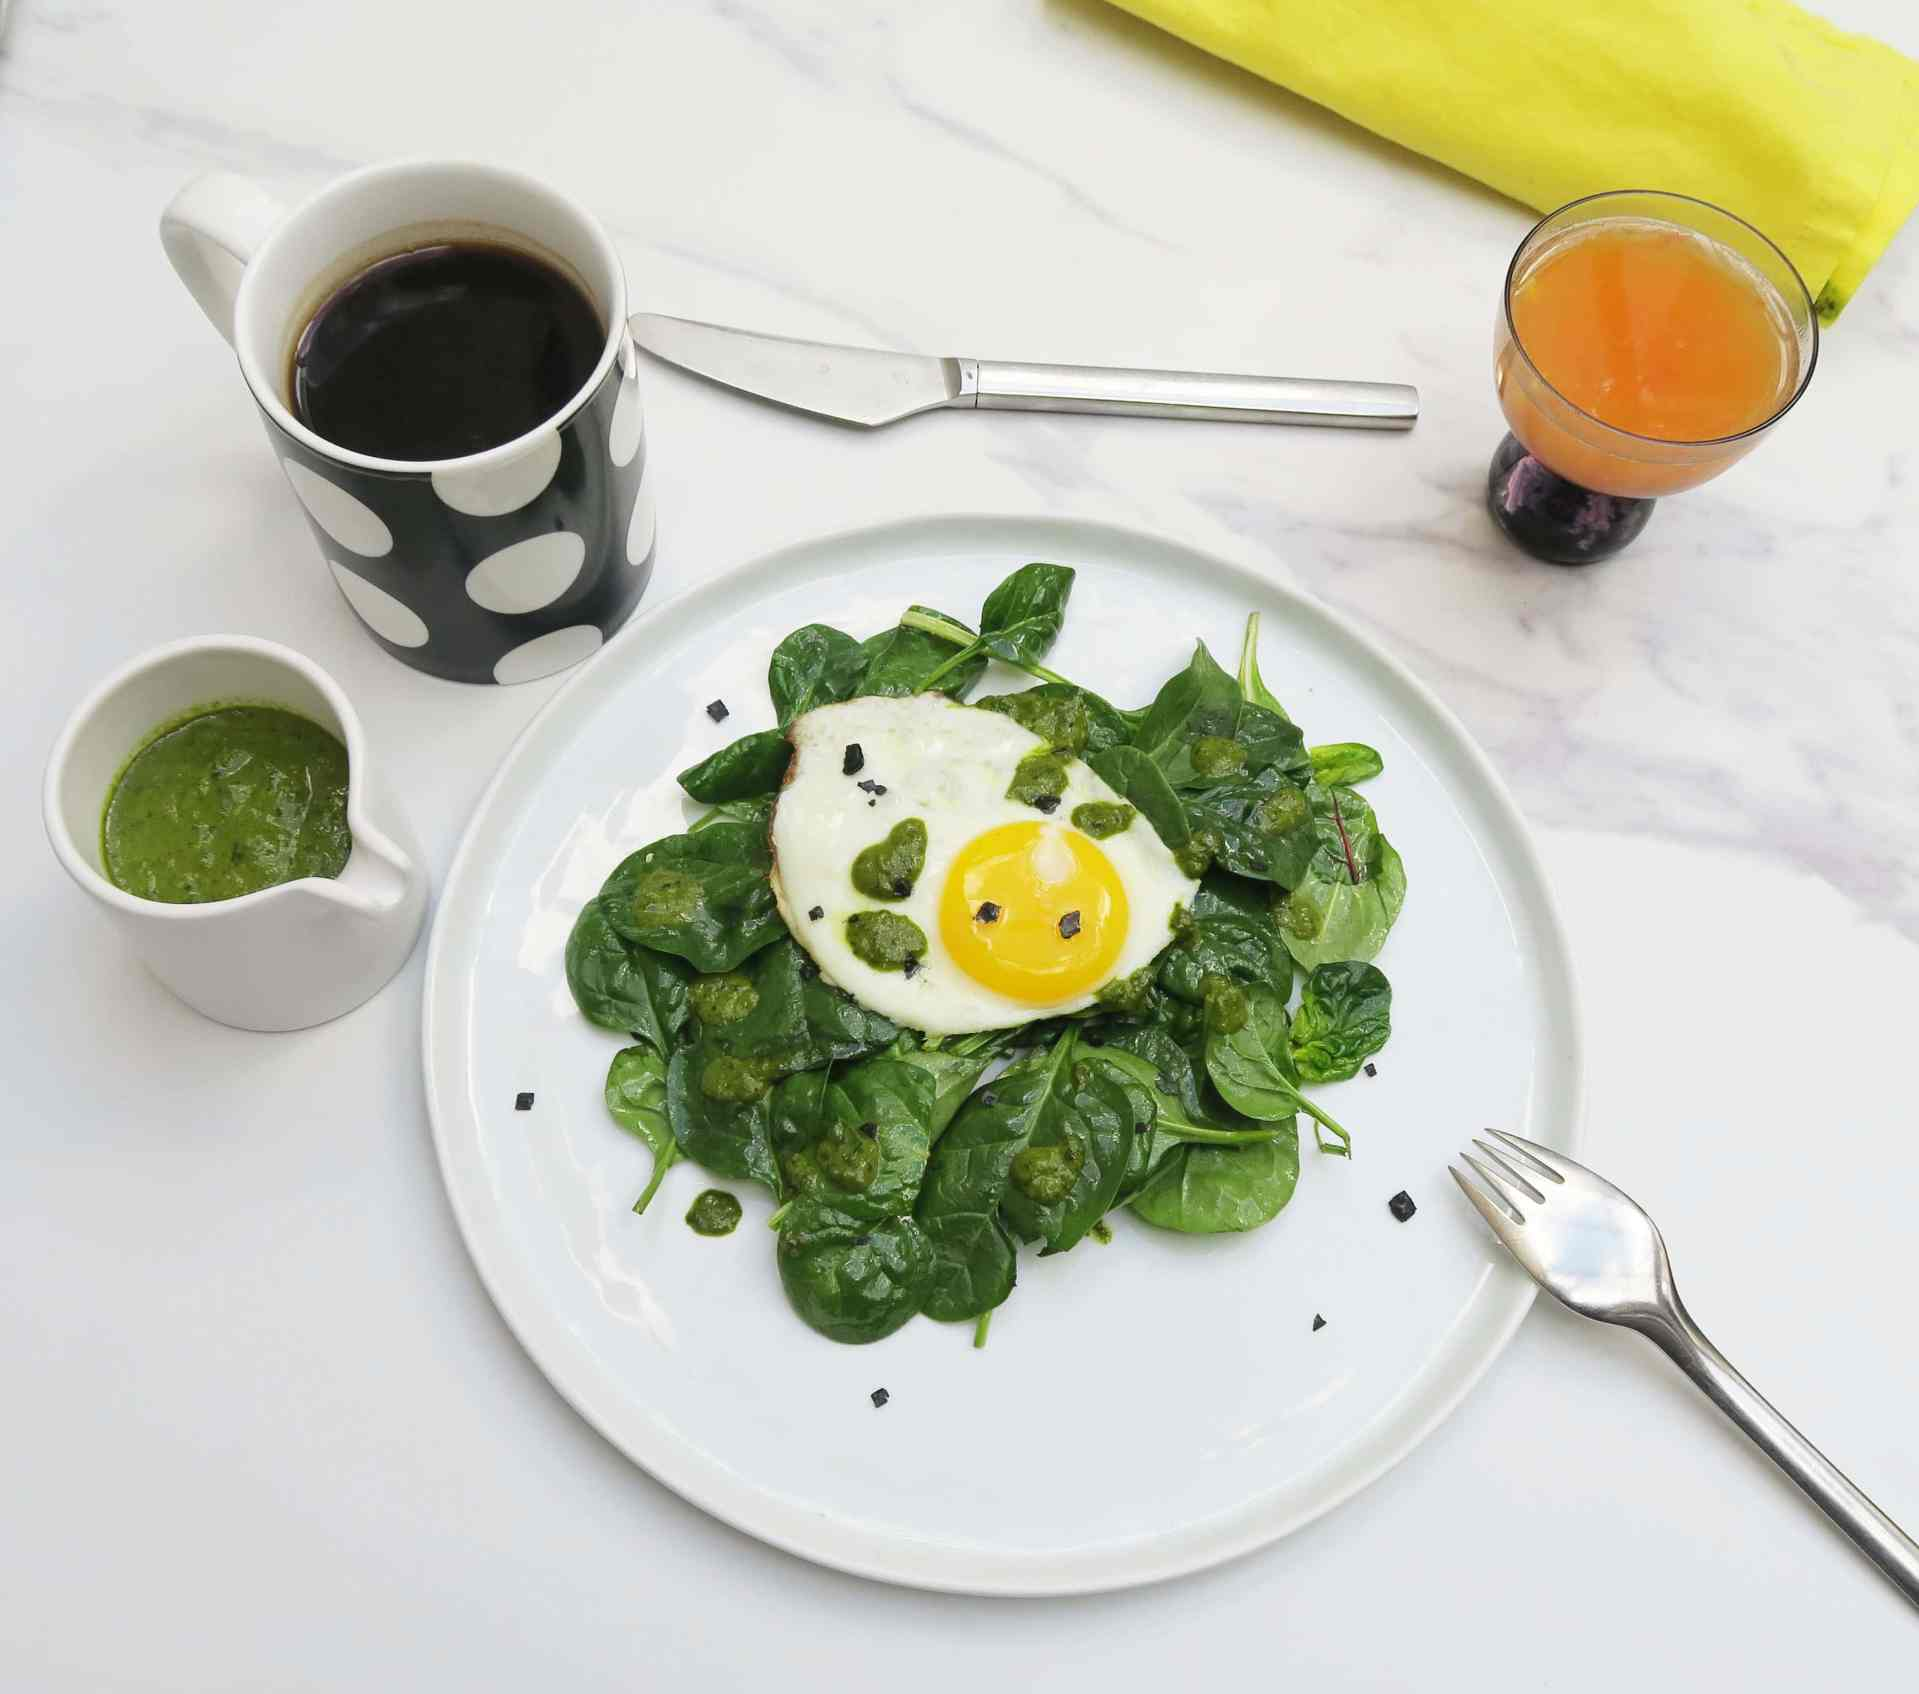 Baby Greens Breakfast Salad with Fried Egg and Herbal Overdose Dressing